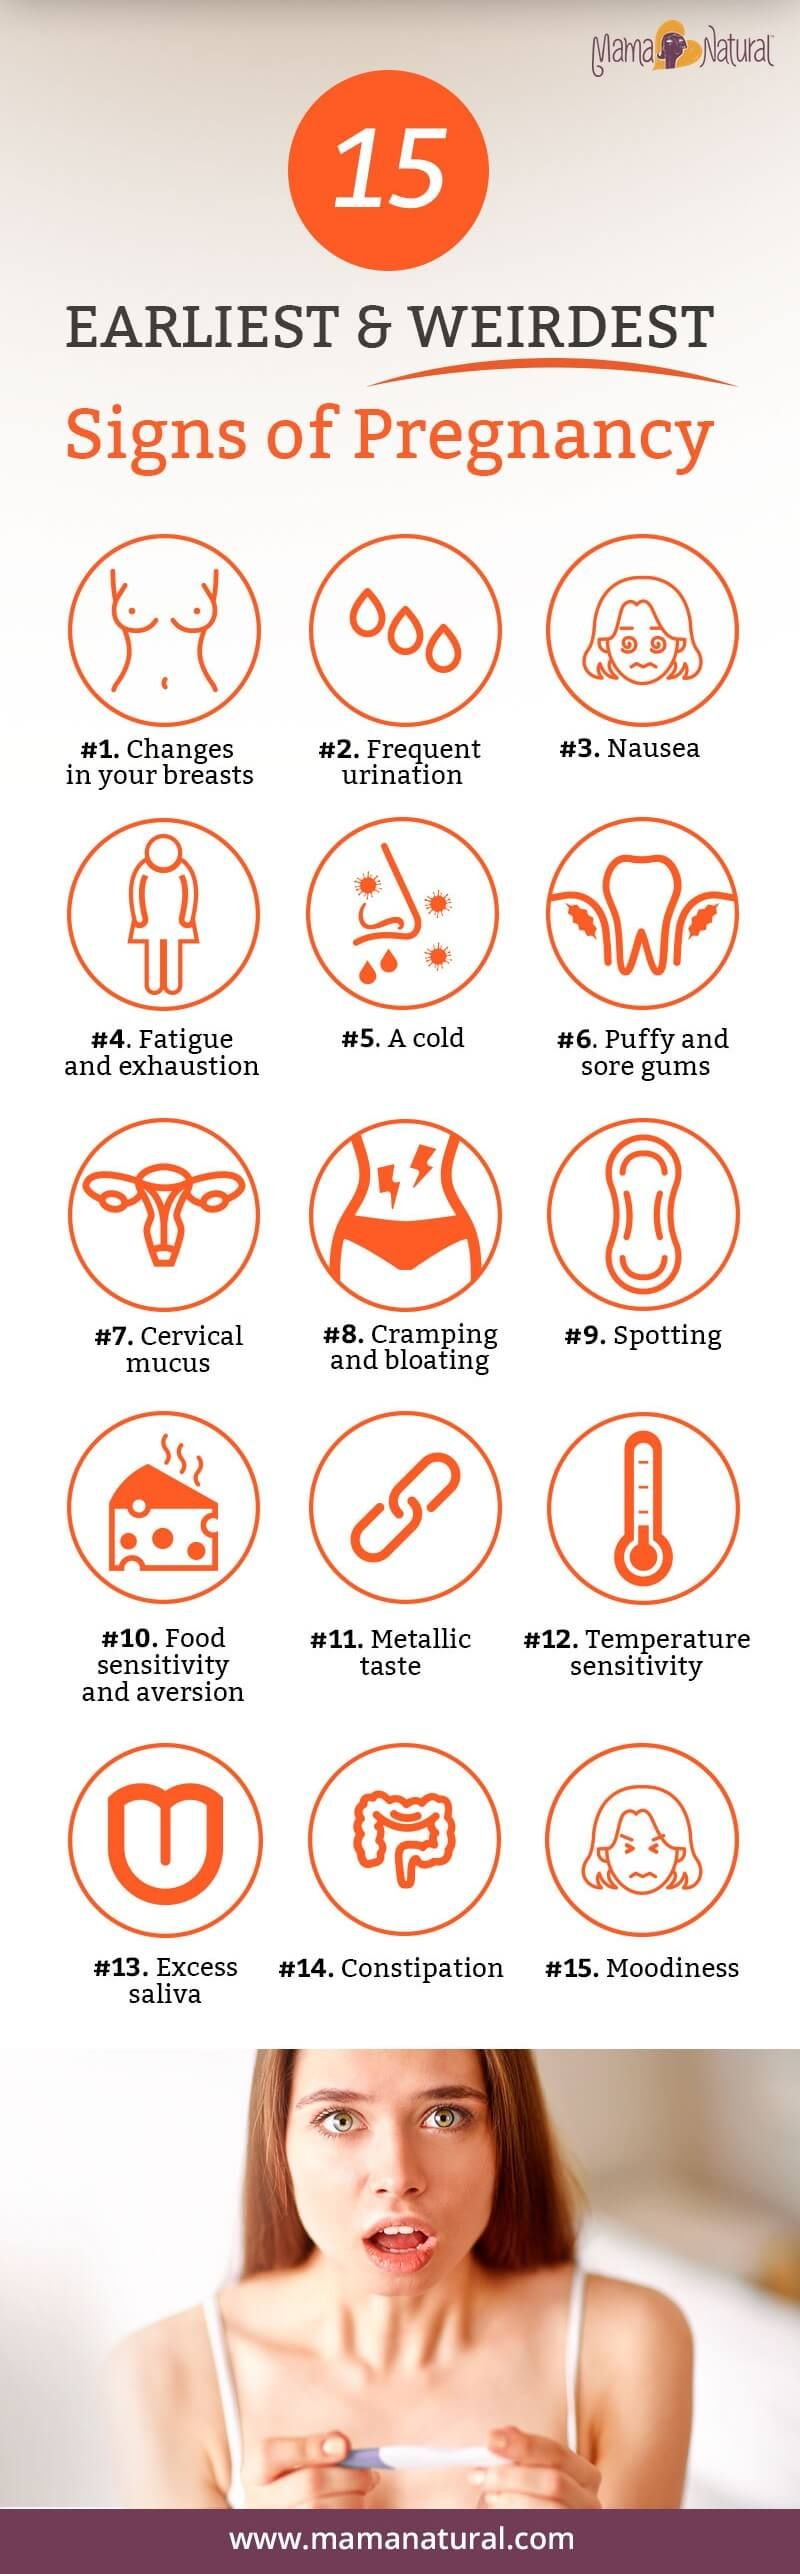 Signs of Pregnancy The 15 Earliest and Weirdest Pregnancy